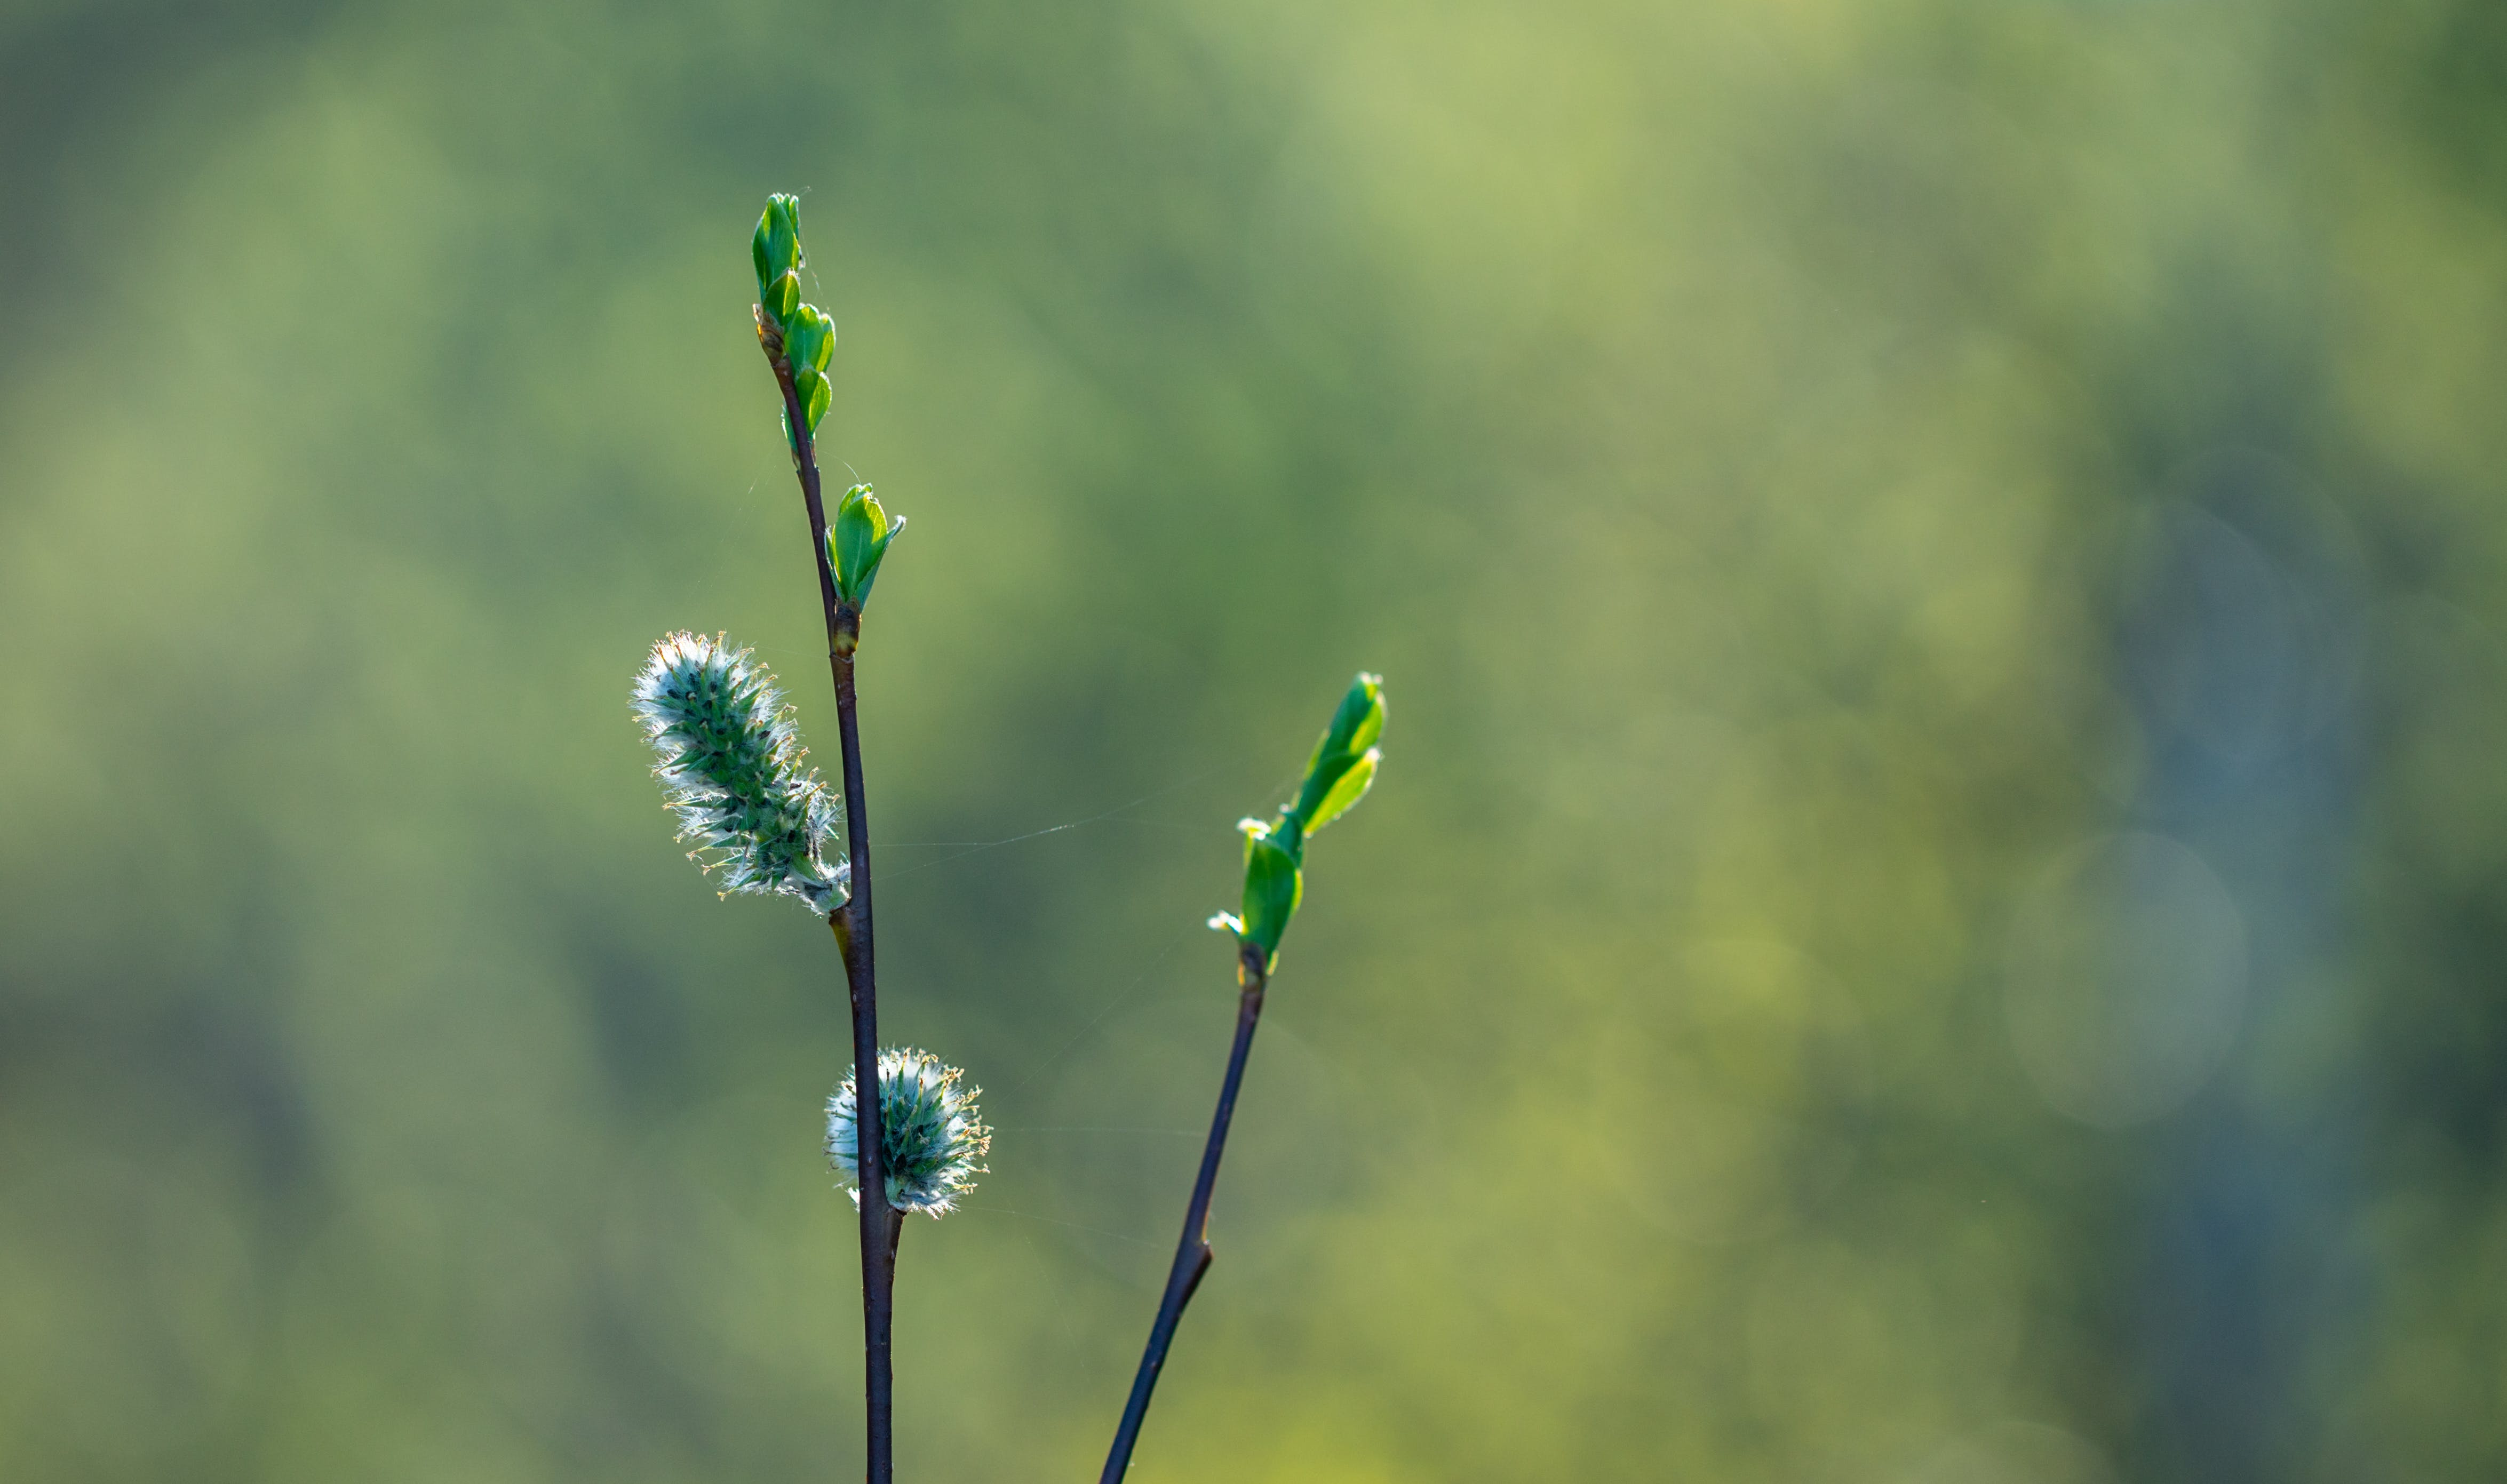 Selective Focus Photo of Green Plant